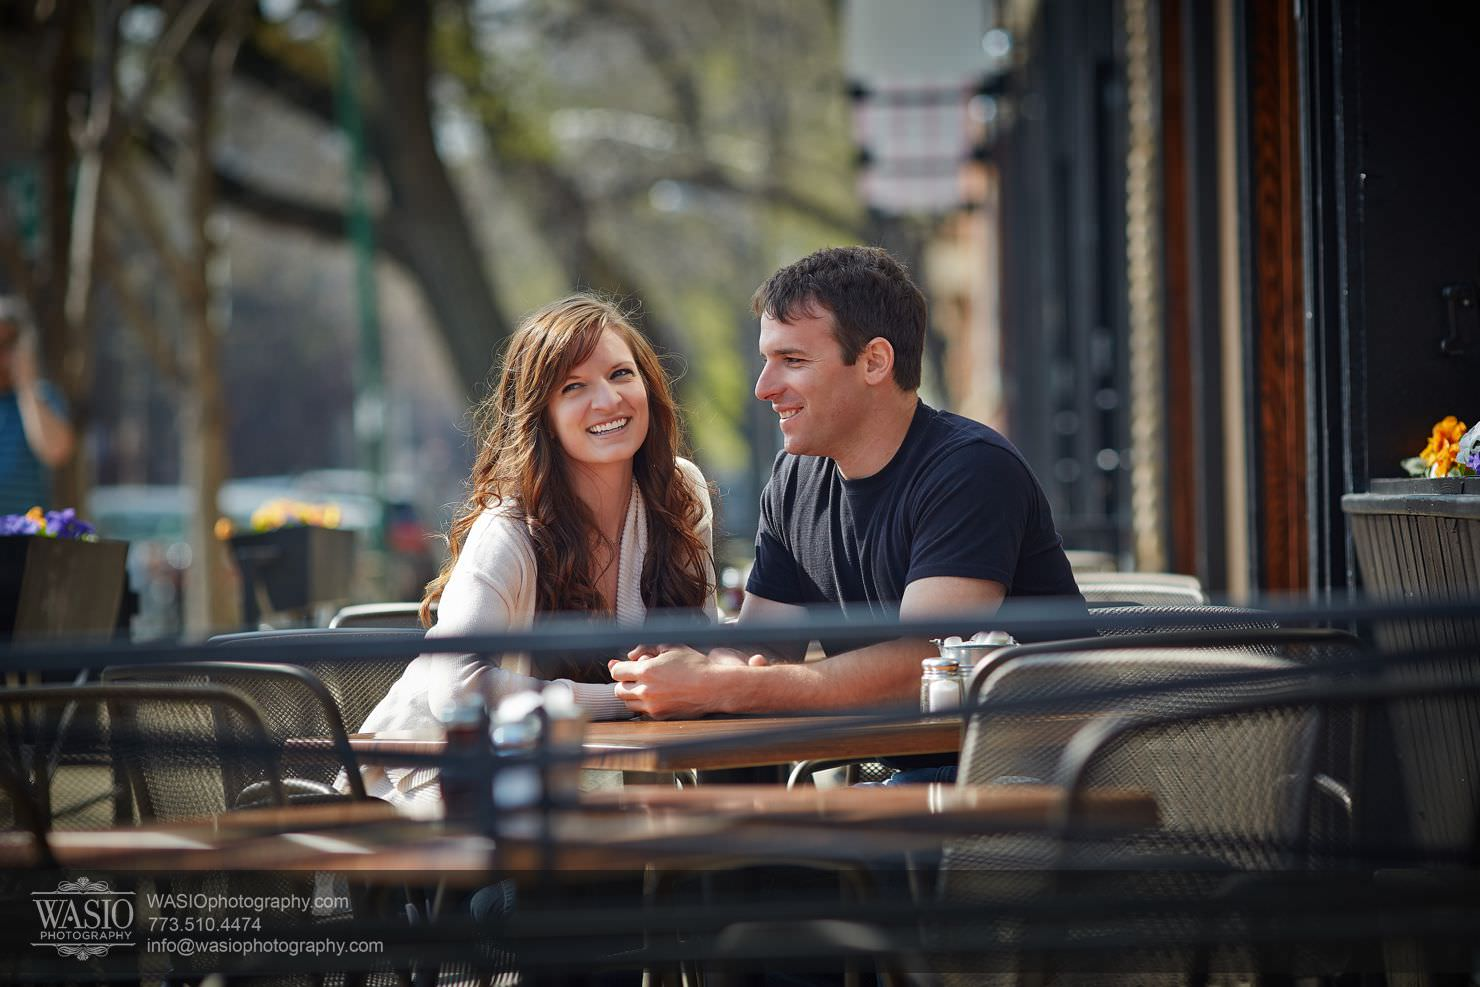 Roscoe-Village-Engagement-Amy-and-Kyle_003 Roscoe Village Engagement - Amy + Kyle